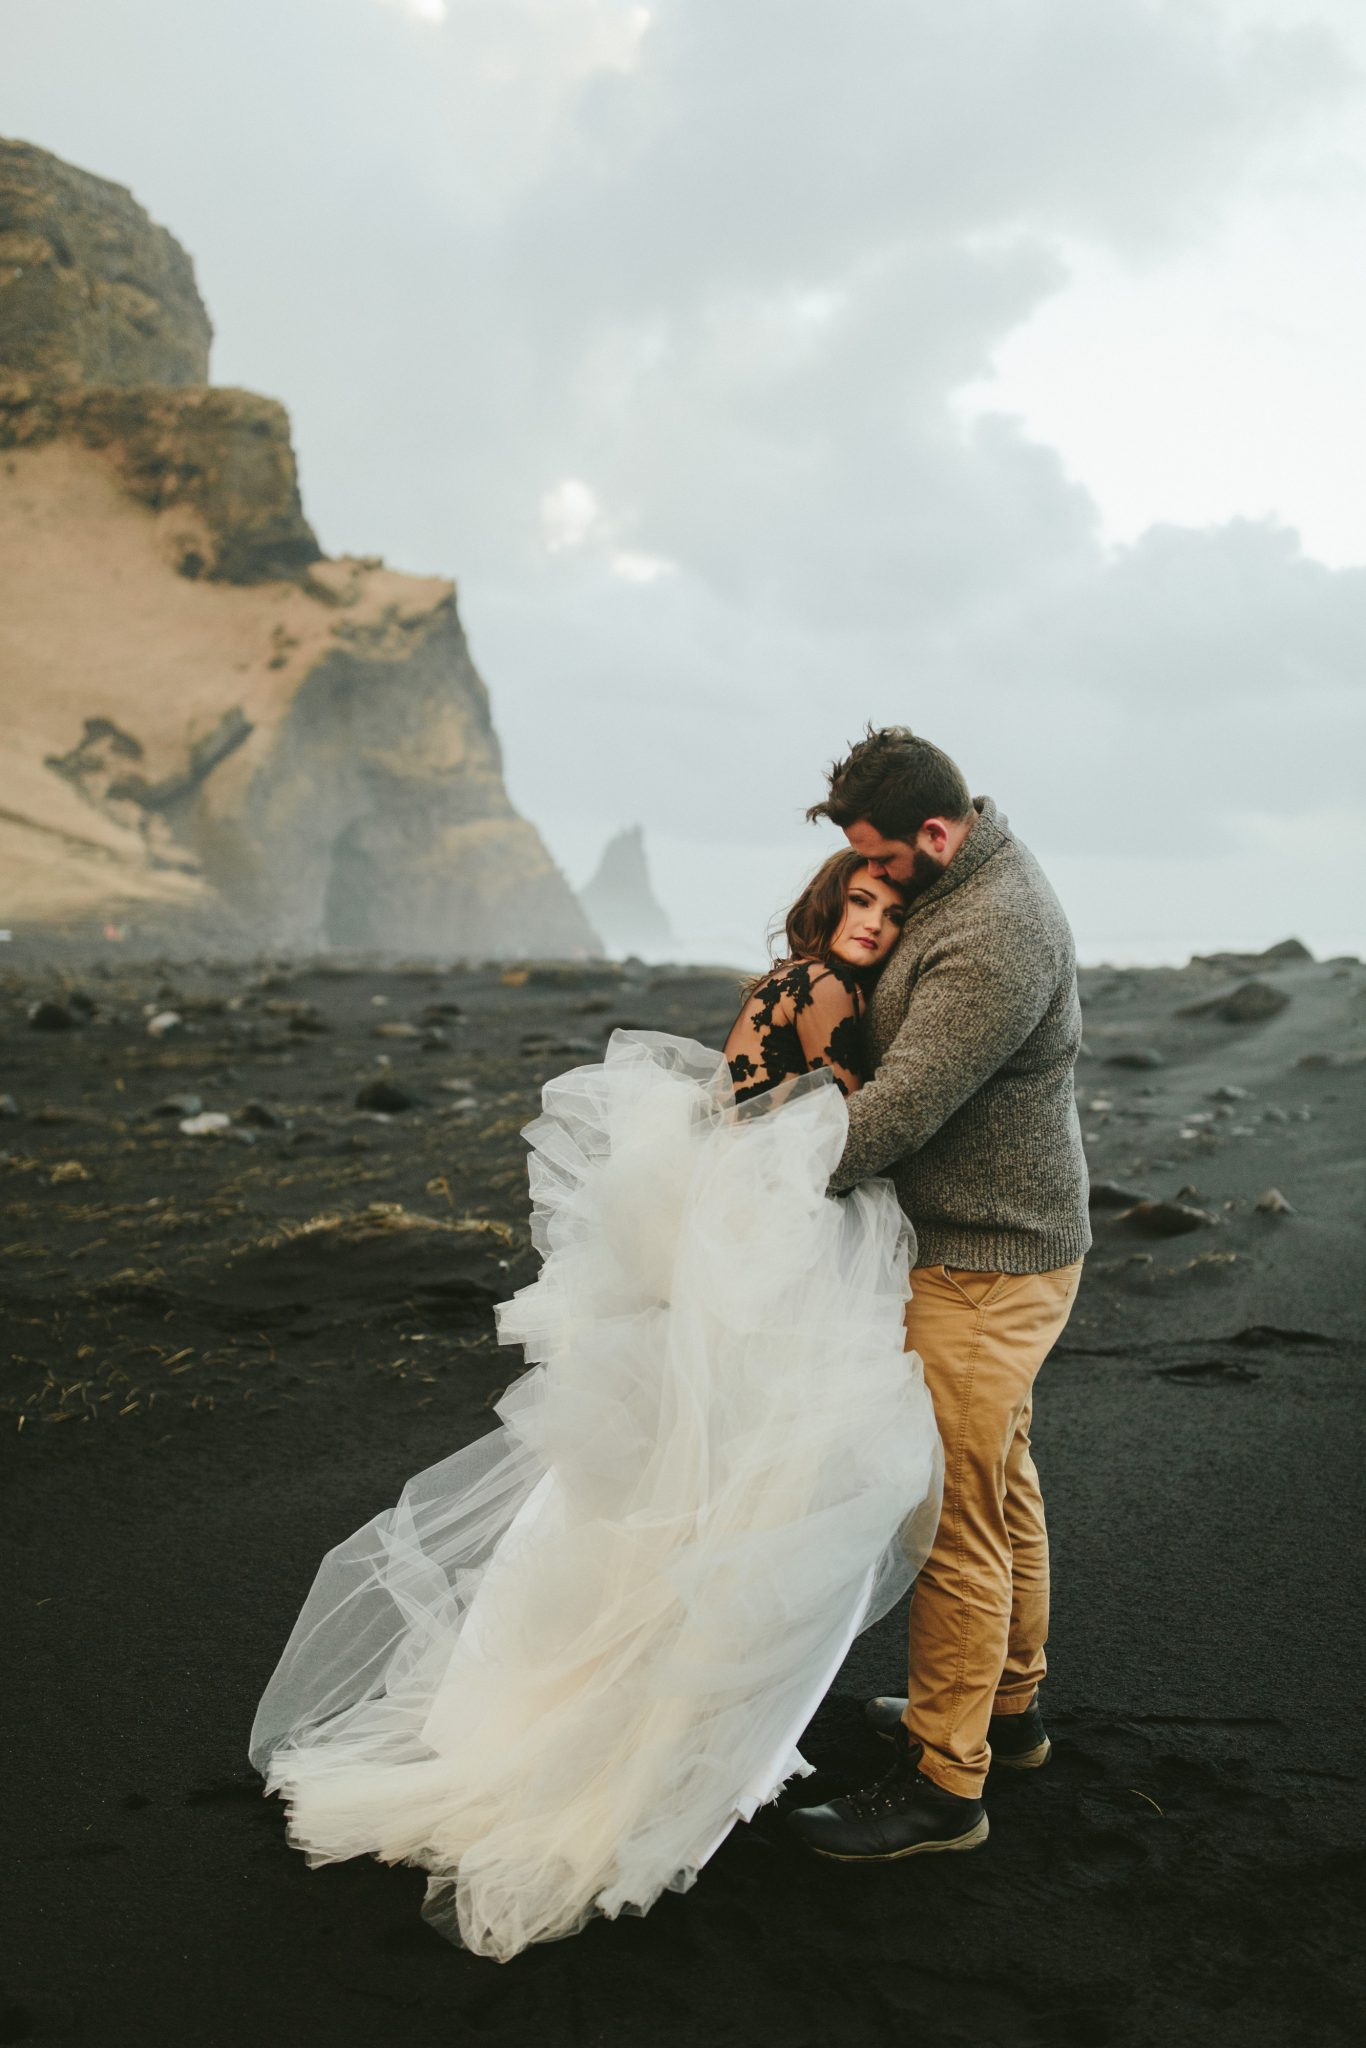 black sand beach photos, iceland black sand beach, see through wedding dress, couples photos in iceland,brooklyn wedding photographer, Iceland wedding photos, brooklyn new york photographer, destination wedding photographer, photojournalistic brooklyn wedding photographer, philadelphia wedding photographer, photojournalistic philadelphia wedding photographer, unique wedding photos, untraditional wedding ideas, Iceland elopement photographer, destination elopement photographer, unique elopement inspiration. Tulle wedding skirt, black wedding dress